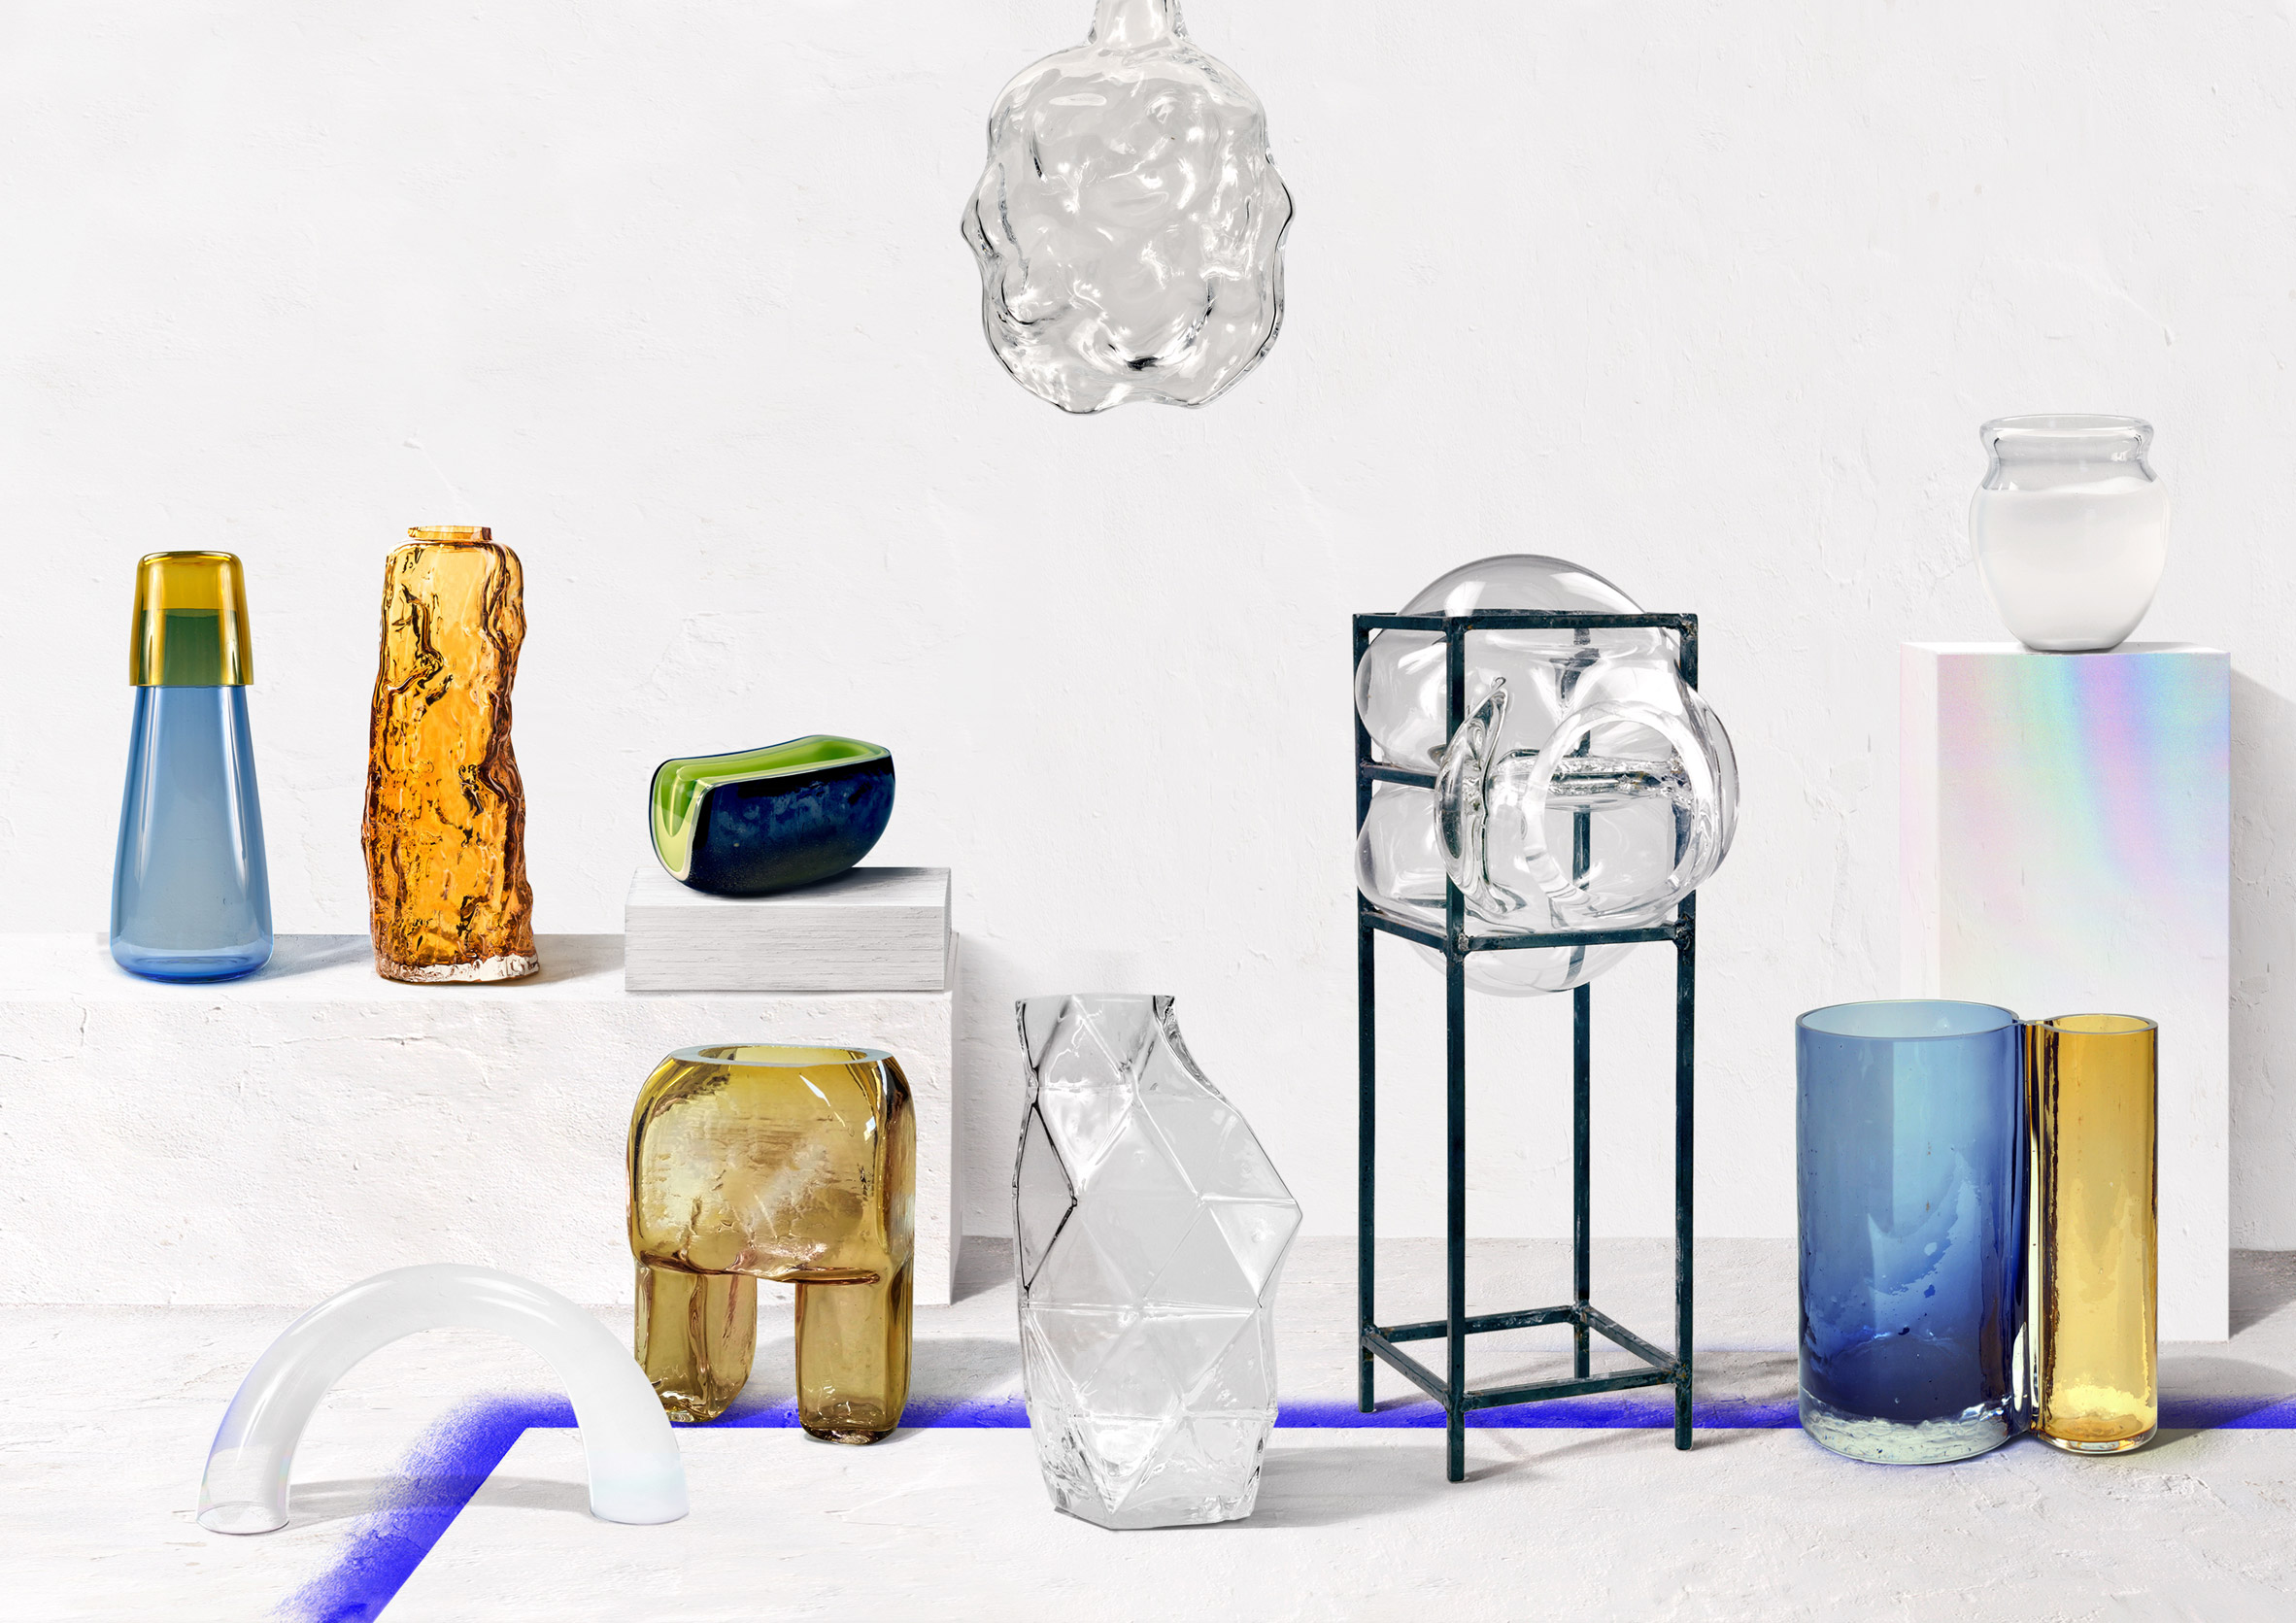 Portuguese designers rethink traditional glass blowing for OFF Portugal exhibition